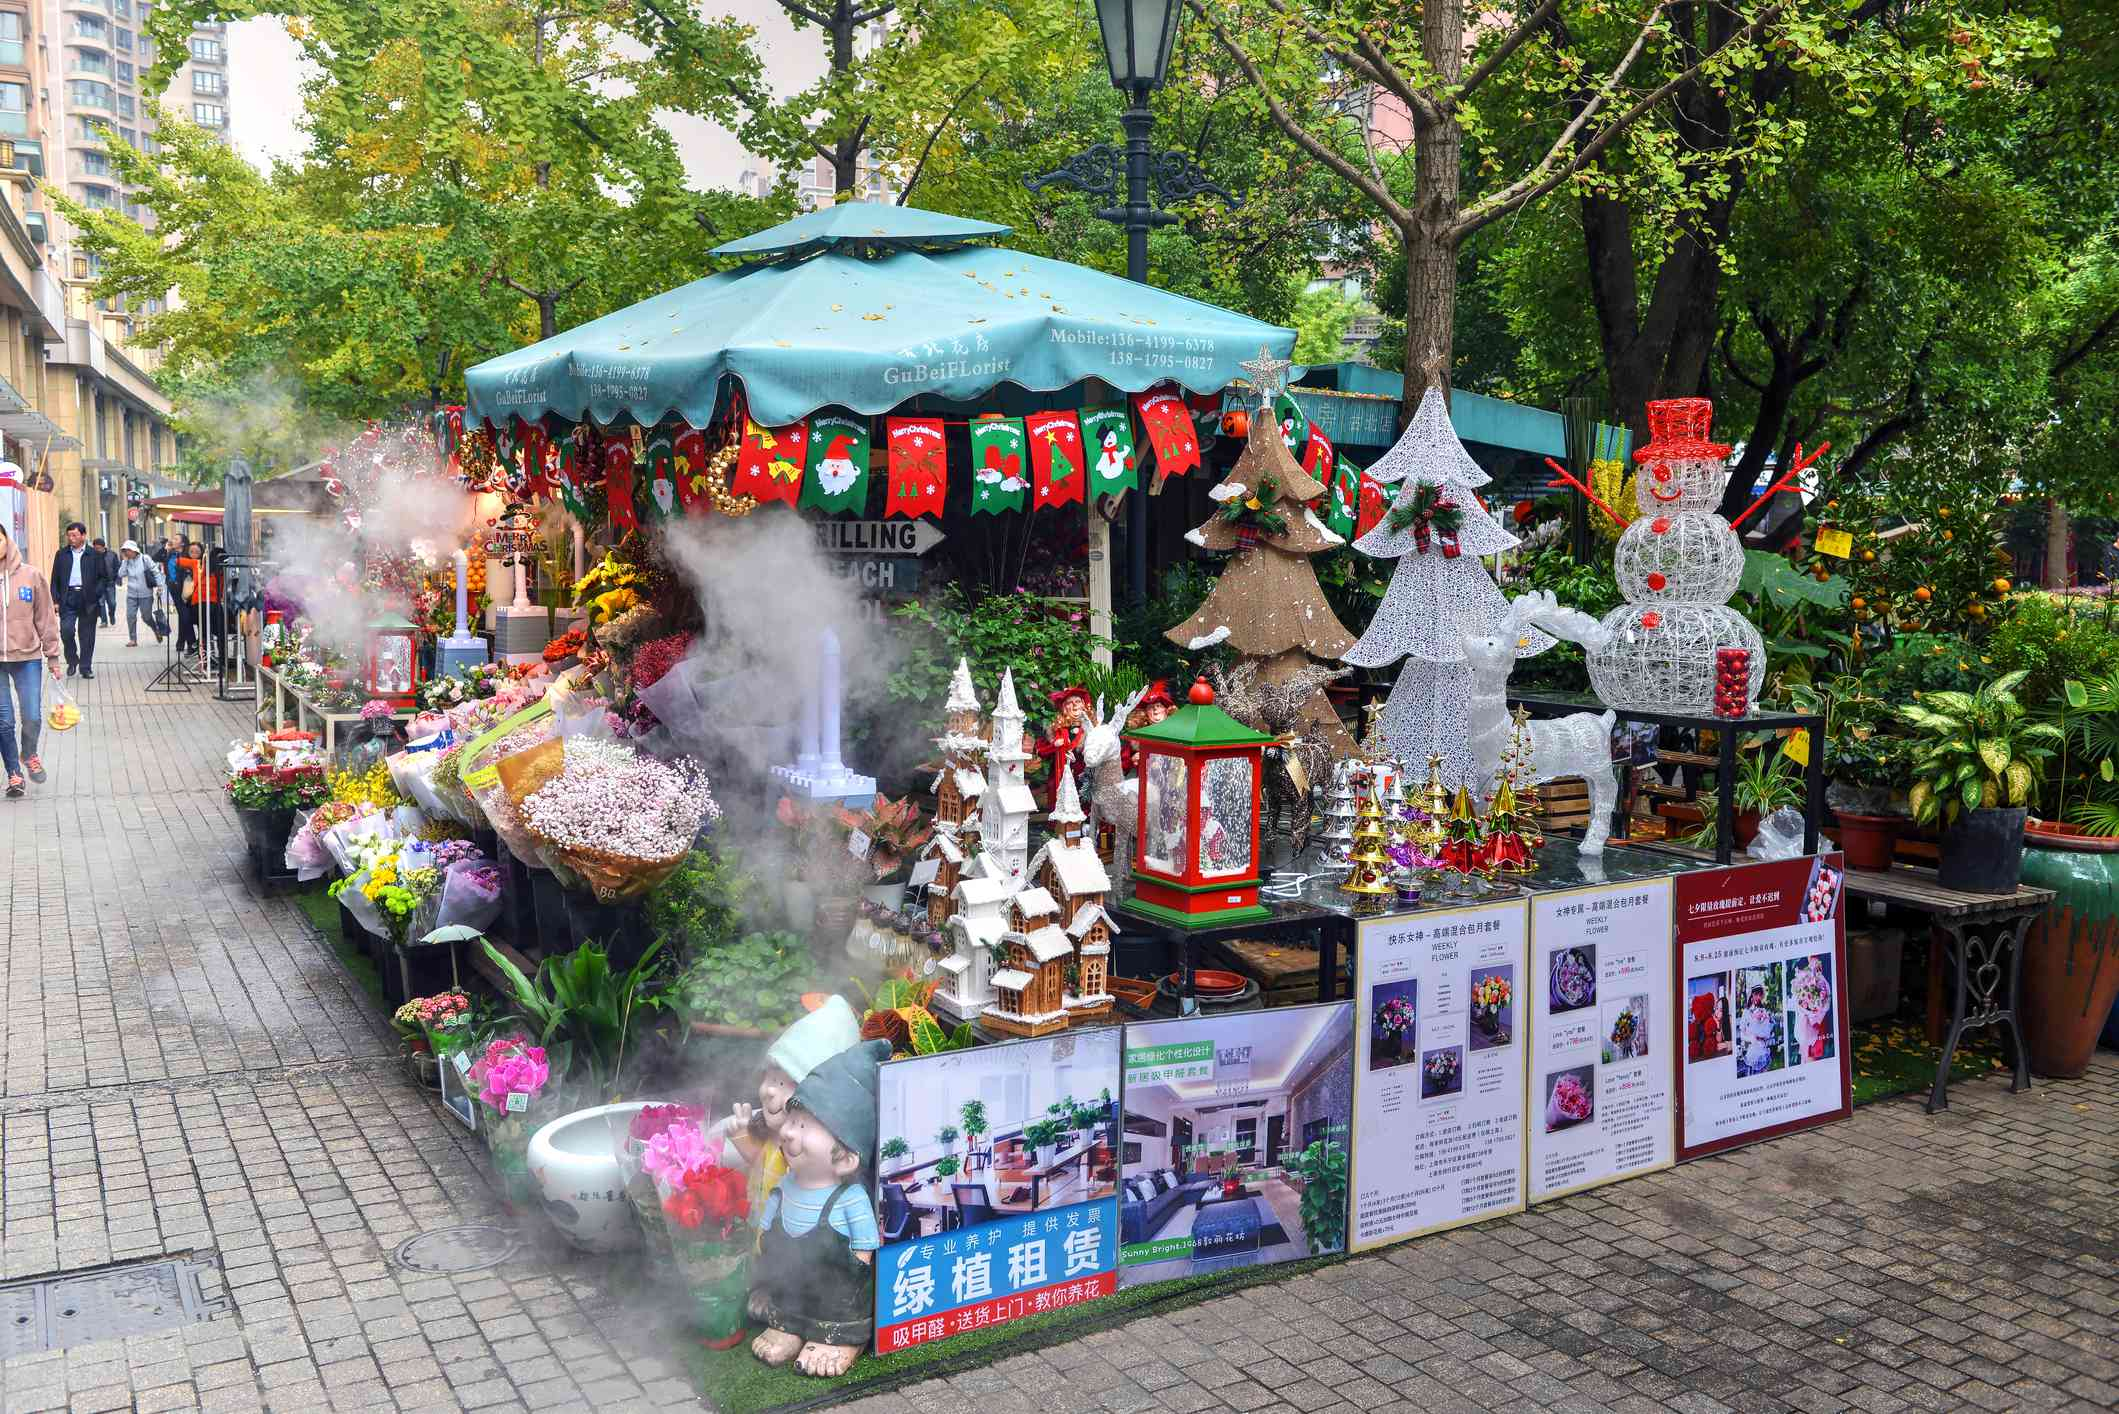 Shanghai, China - November 14, 2017: Christmas decorations on display at flower kiosk in the Gubei Golden Street area of Shanghai. Christmas decorations are becoming more popular in China